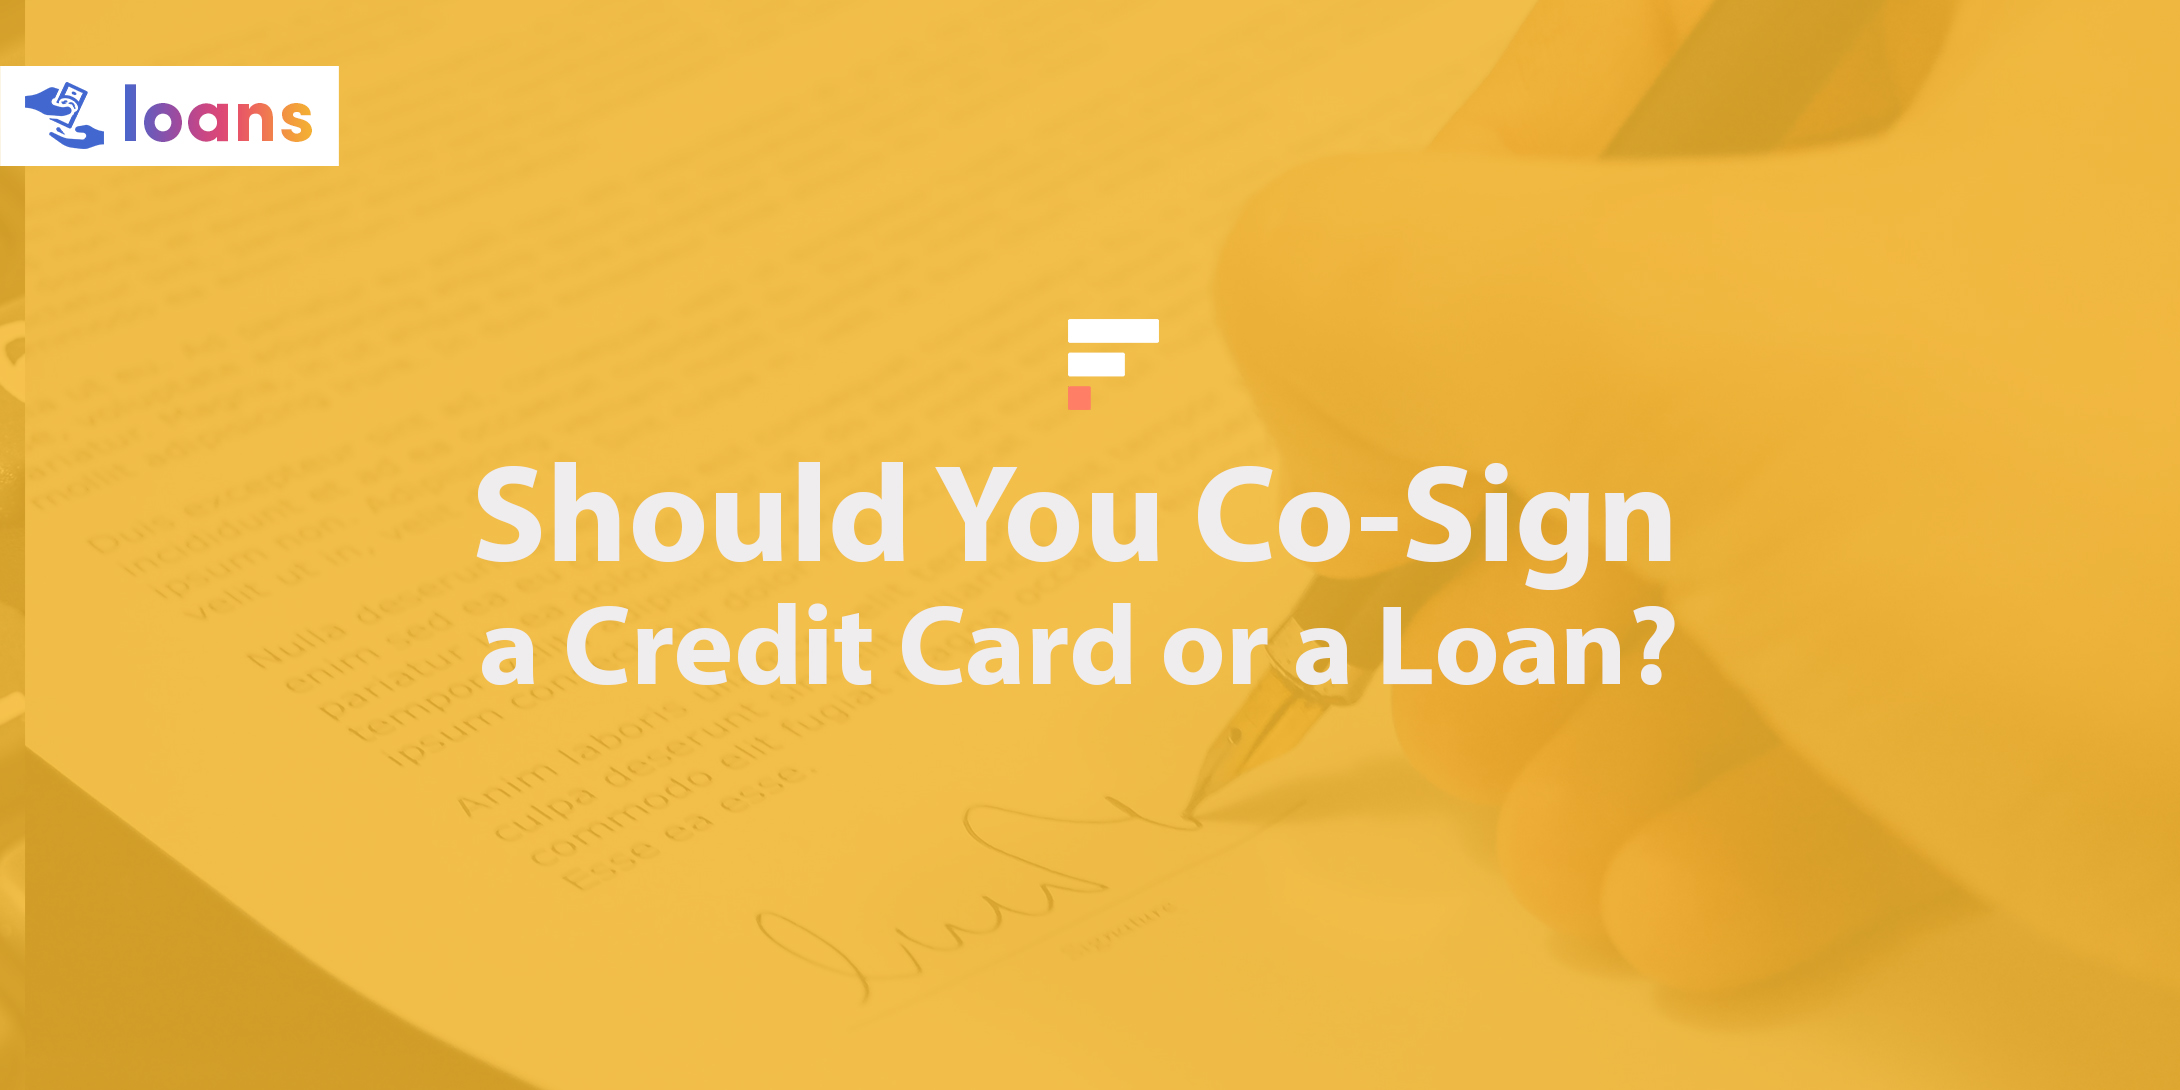 Should You Co-Sign a Credit Card or a Loan?